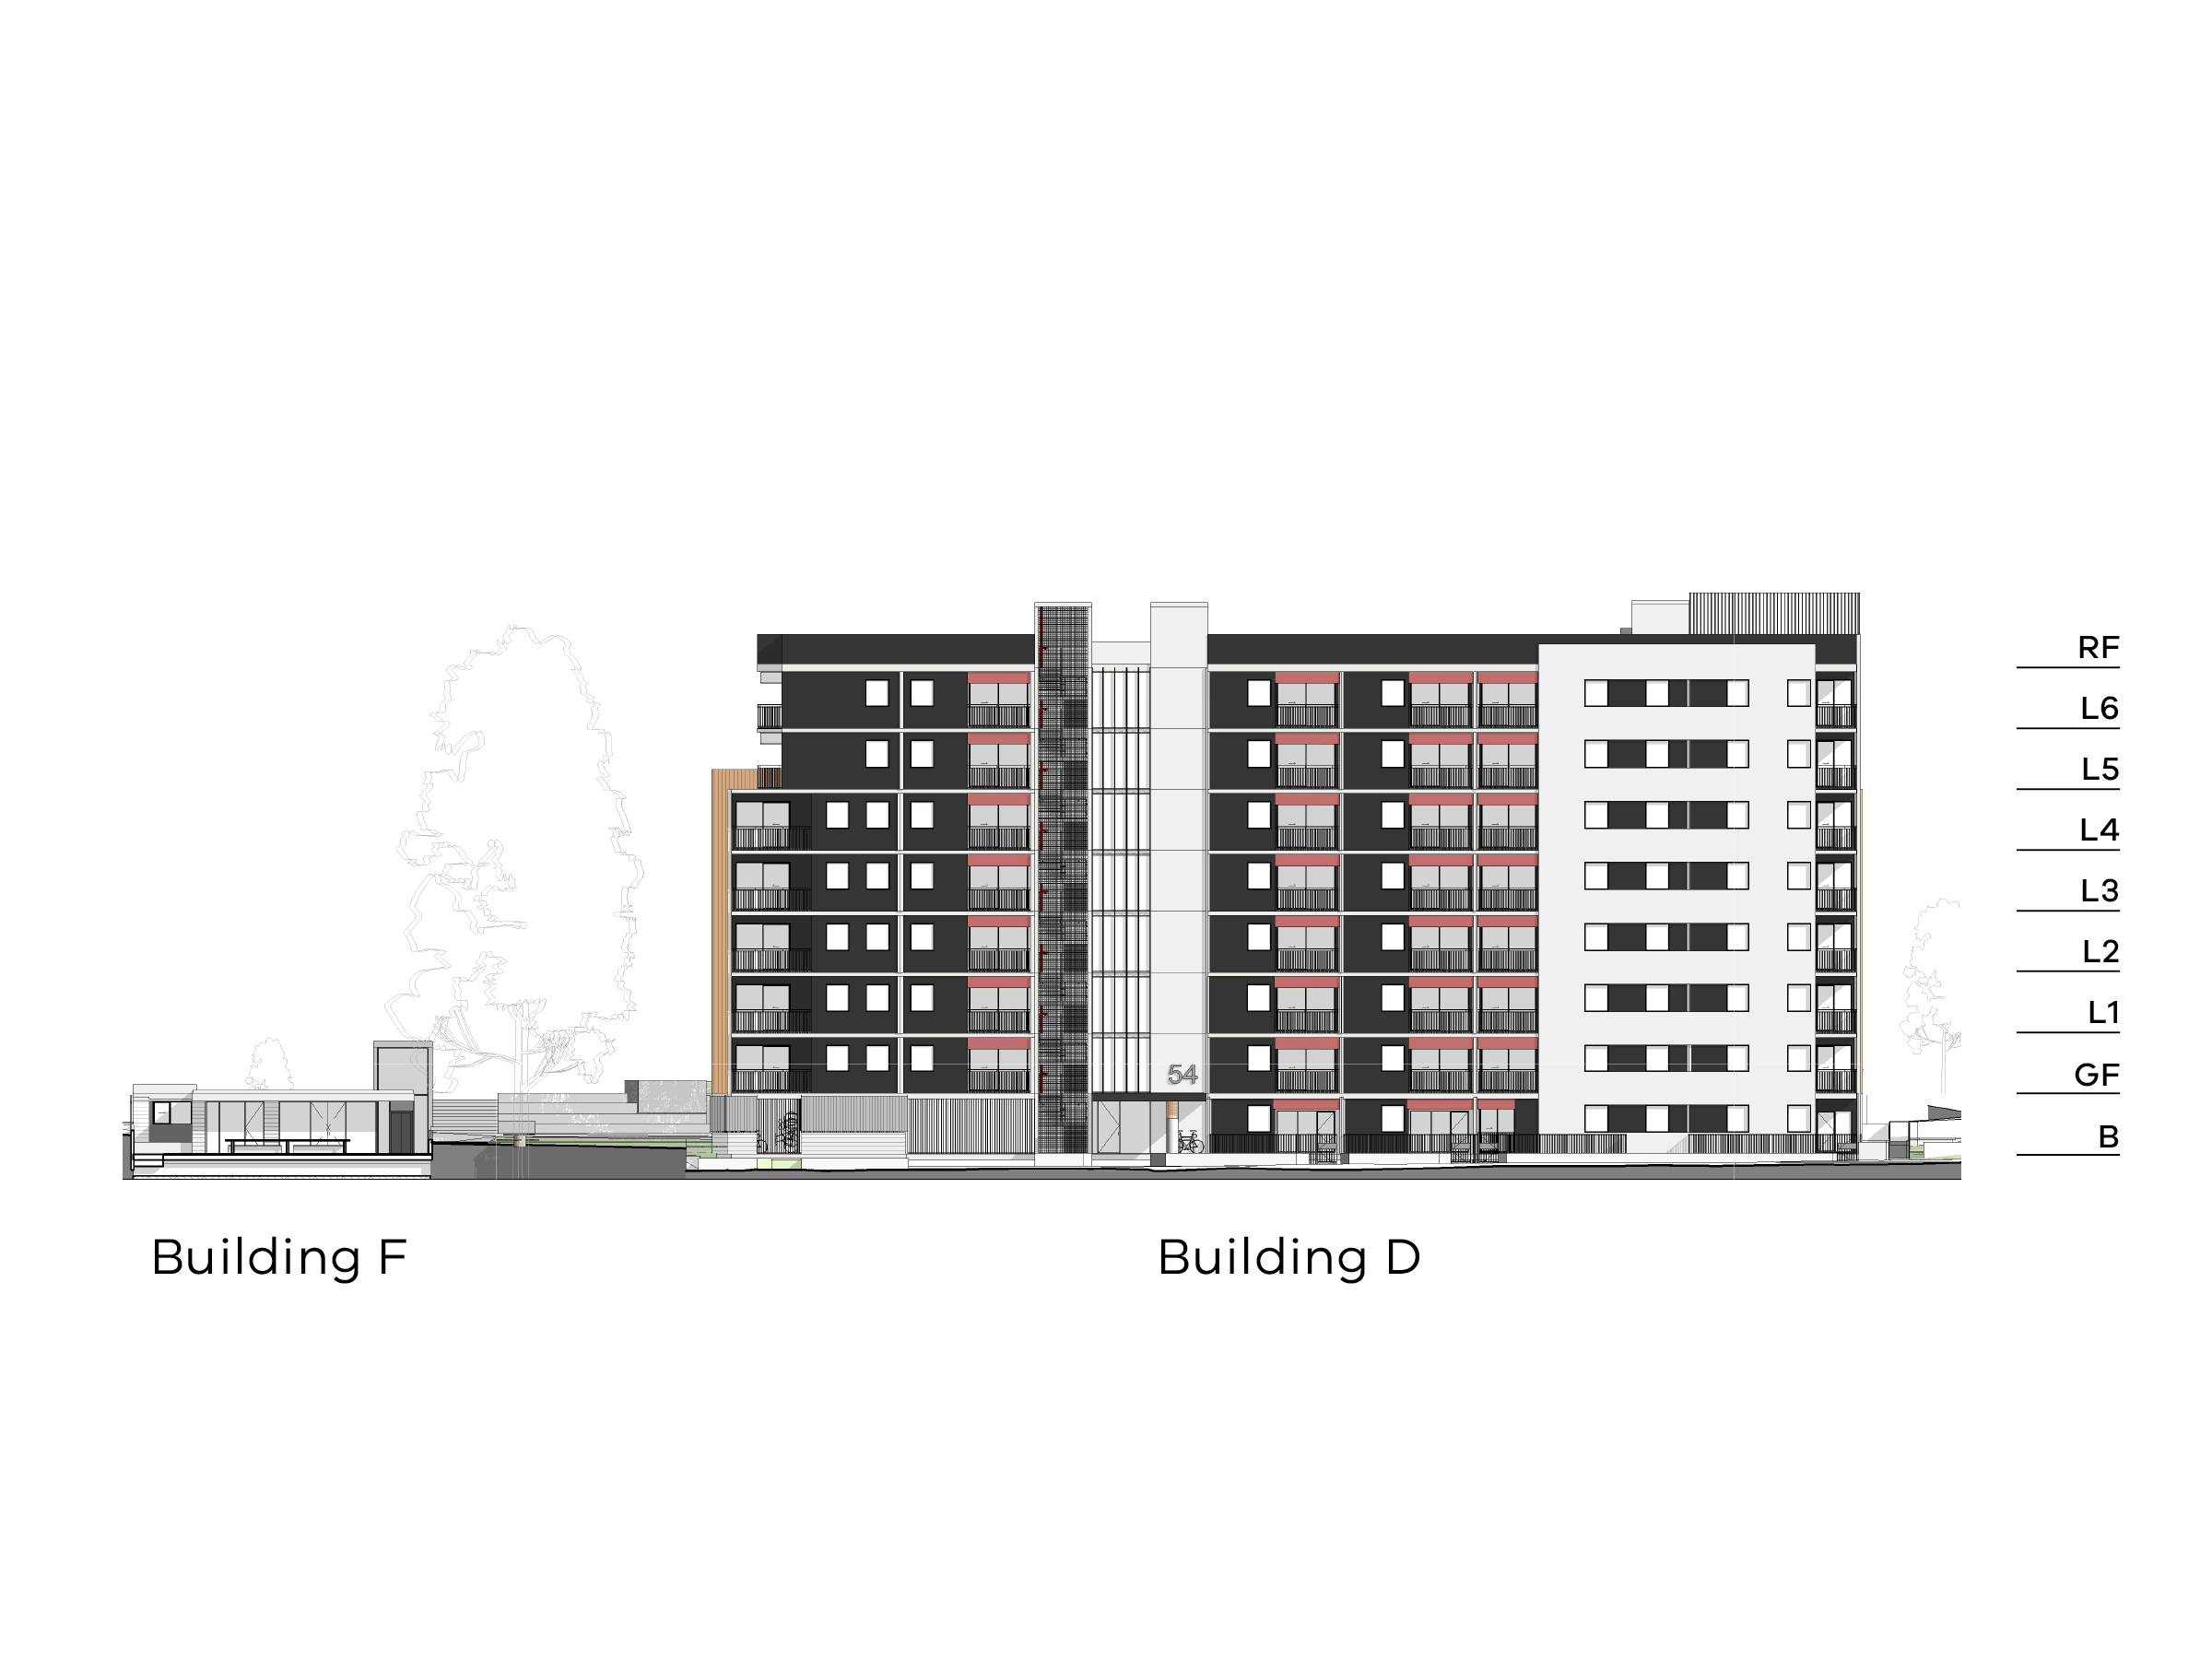 Diagram showing the heights of buildings D and F as seen from New Holland Crescent. Building D has a basement, a ground floor, level 1-6 and a flat roof. Building F has a ground level